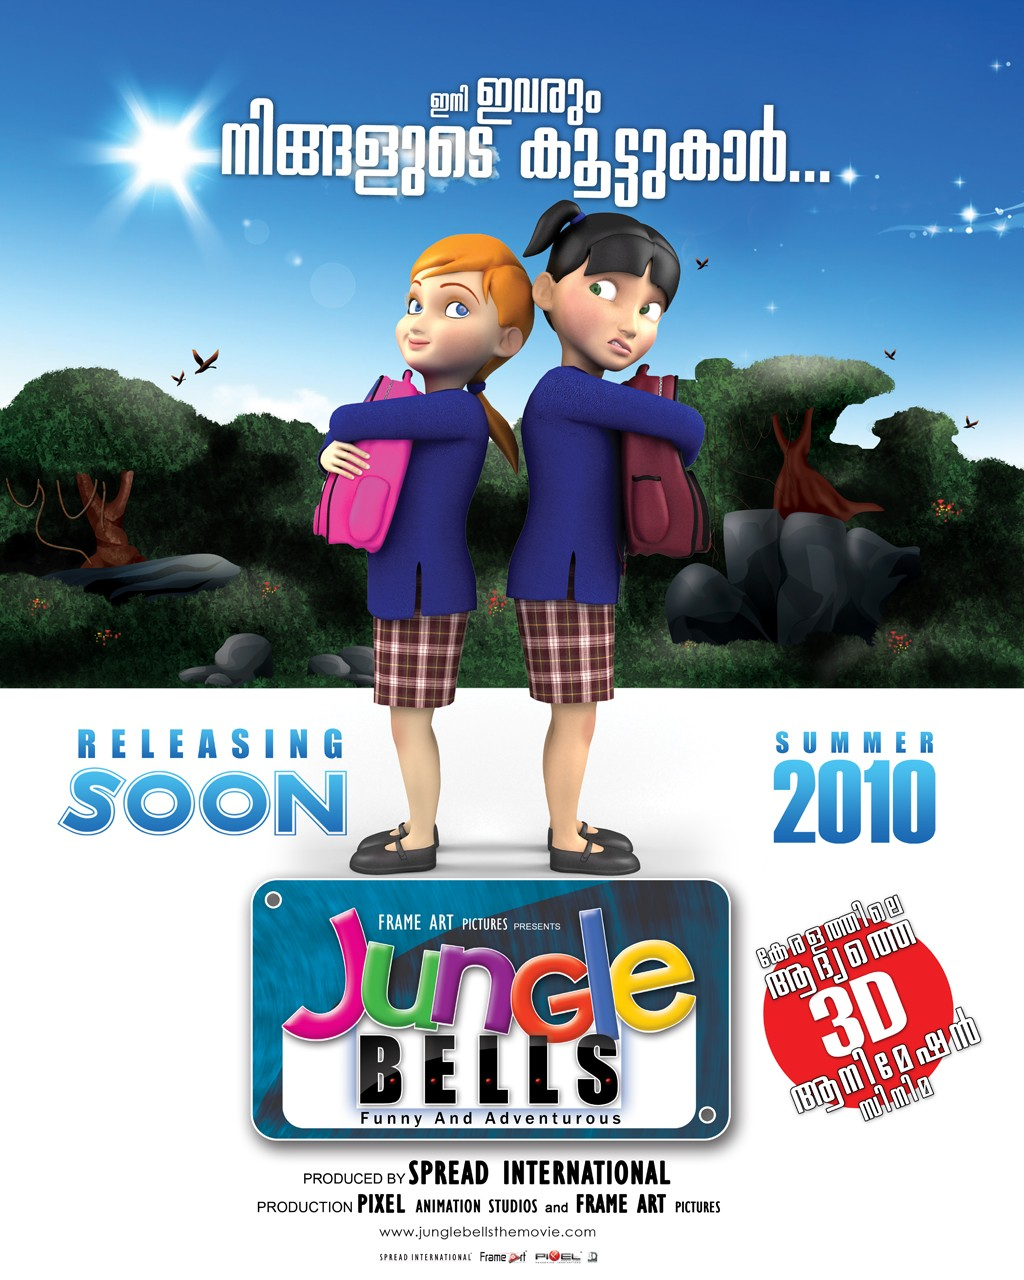 http://4.bp.blogspot.com/_597Km39HXAk/TCiiTj4H1lI/AAAAAAAAHVM/rNVBdeNyaWU/s1600/jungle-bells-movie-wallpaper09.jpg